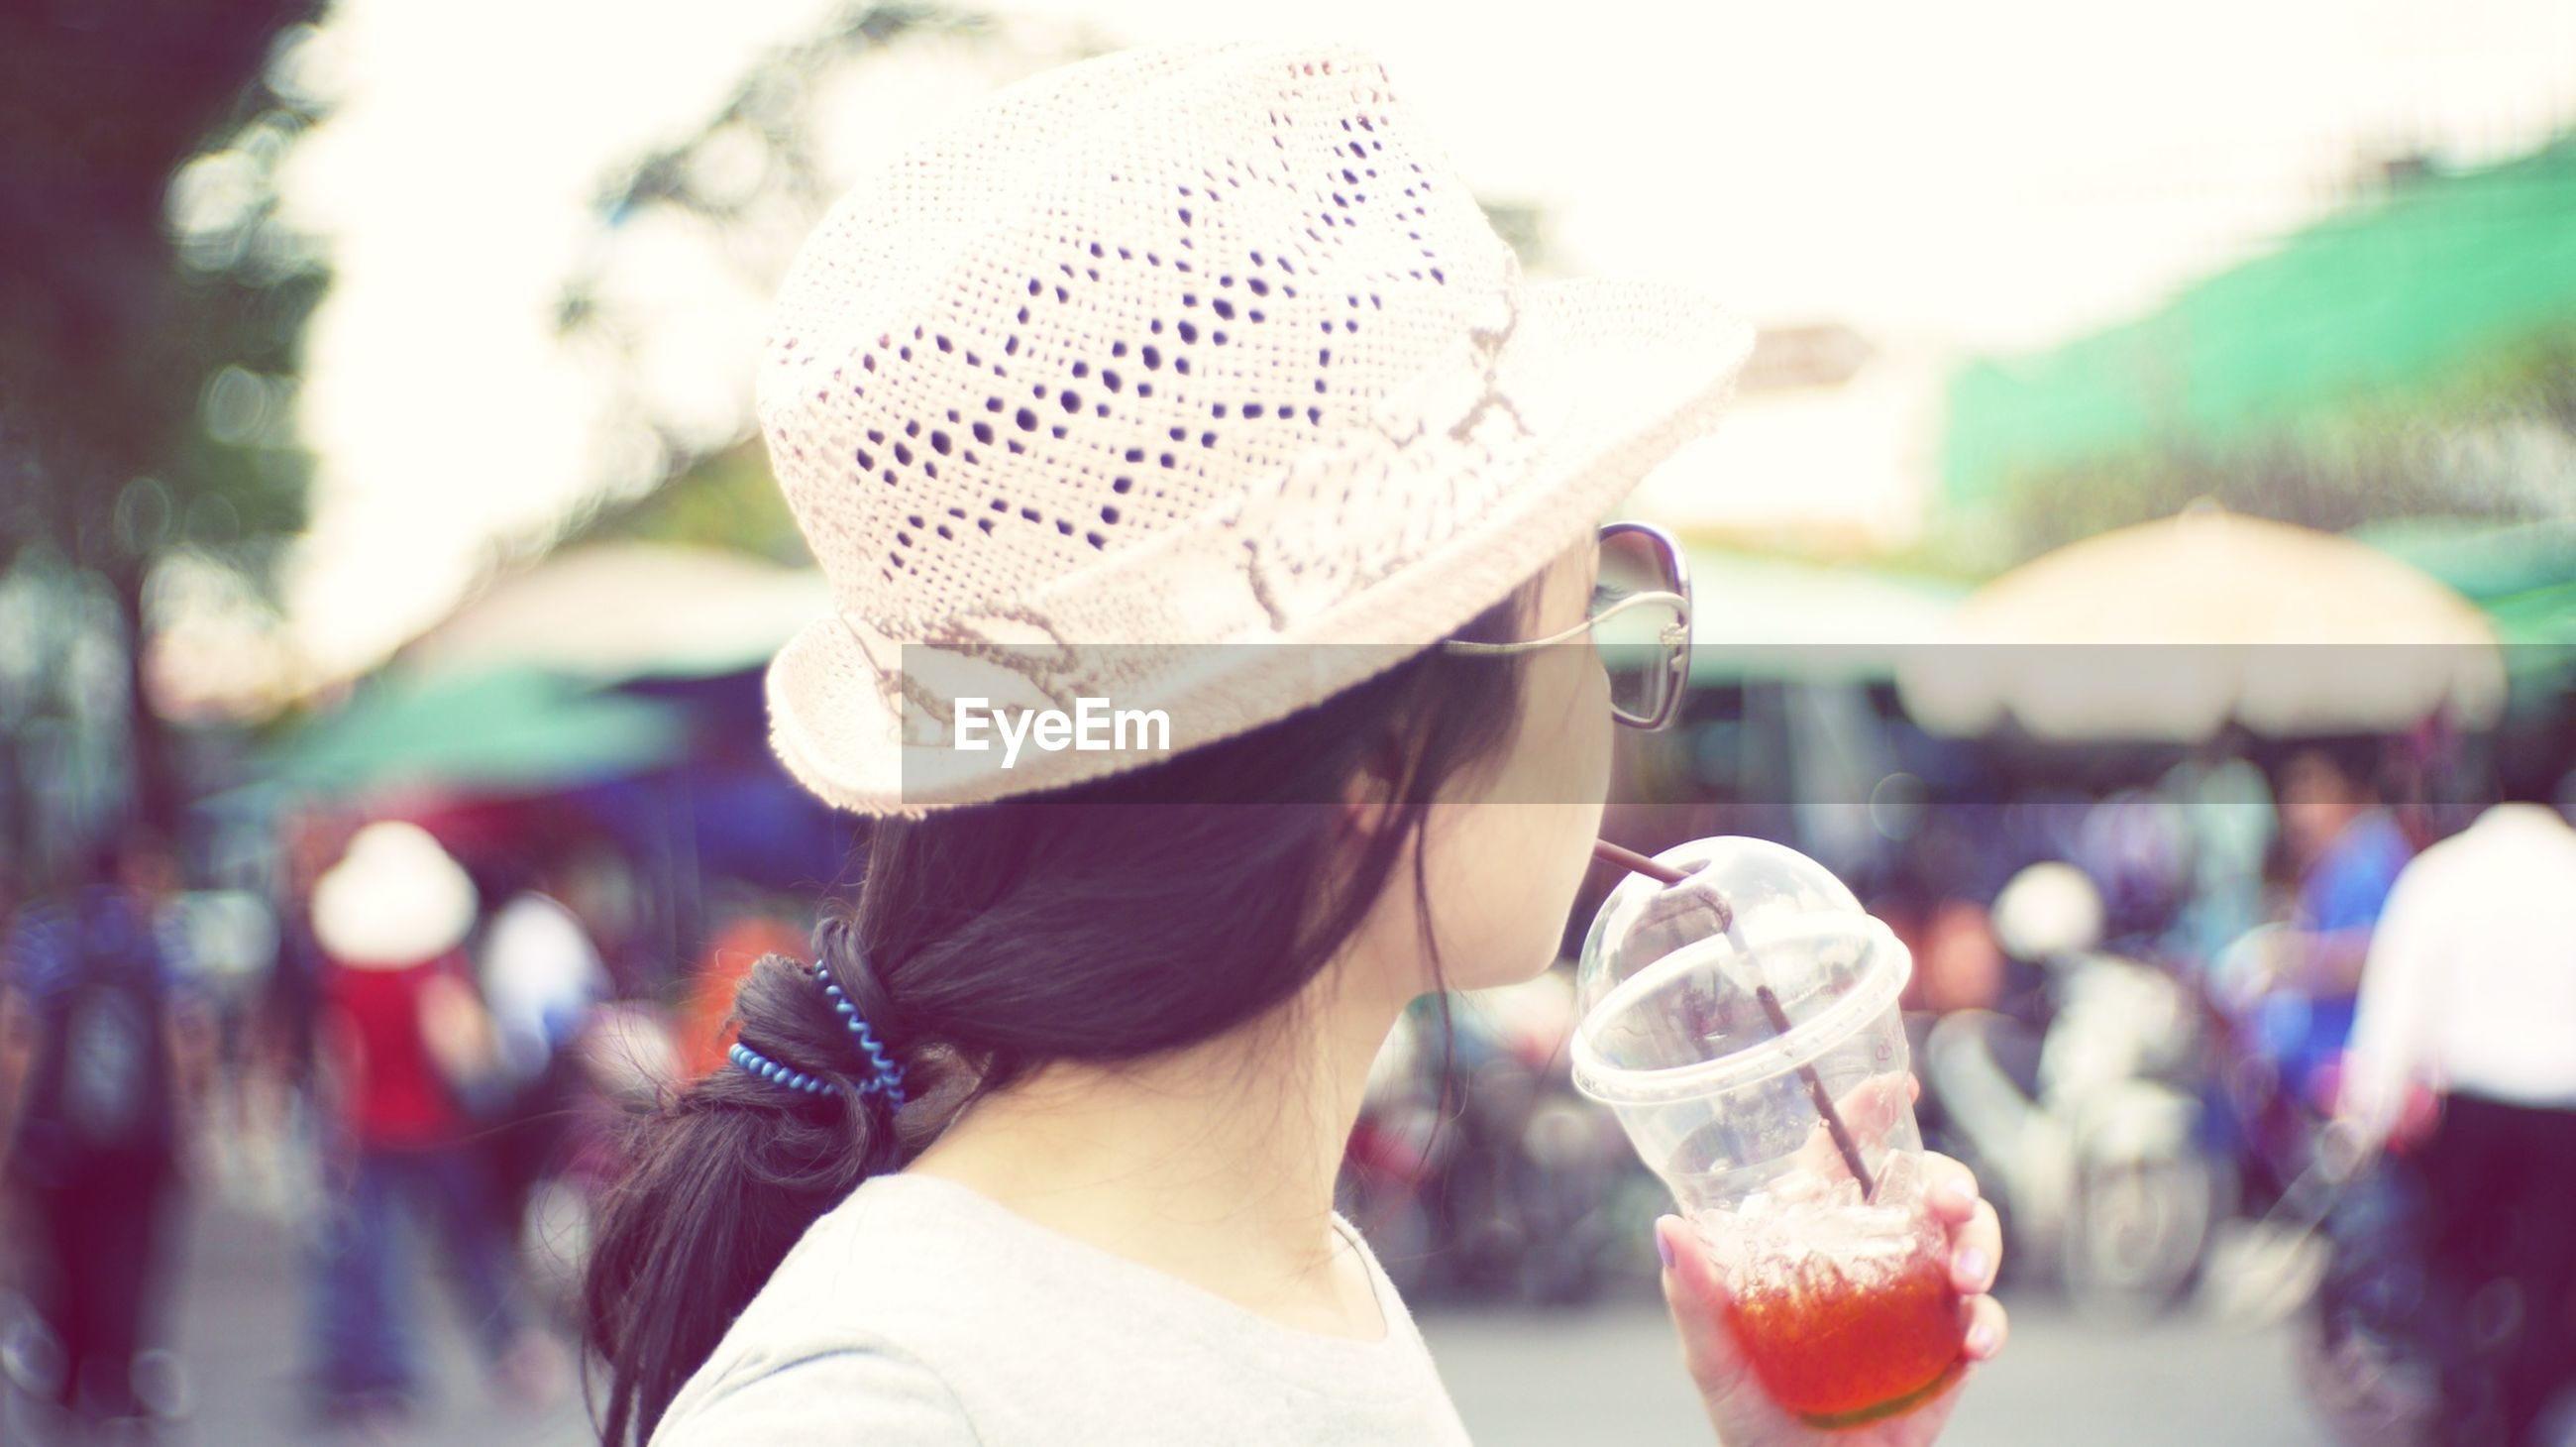 focus on foreground, lifestyles, leisure activity, rear view, person, casual clothing, men, selective focus, incidental people, waist up, standing, holding, street, hat, close-up, girls, outdoors, day